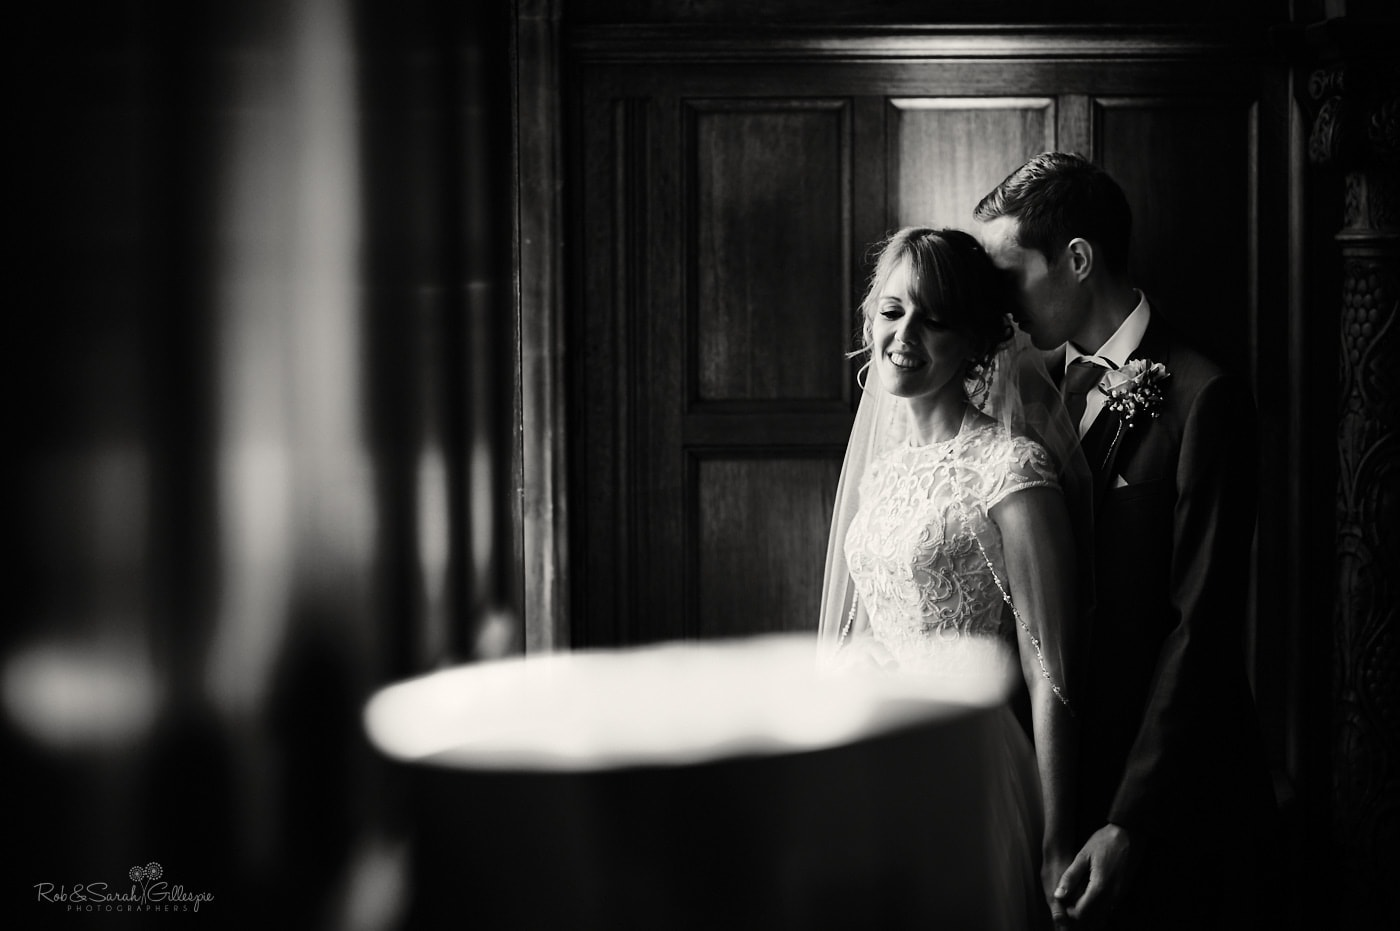 Newly married couple share quiet moment in Pendrell Hall room